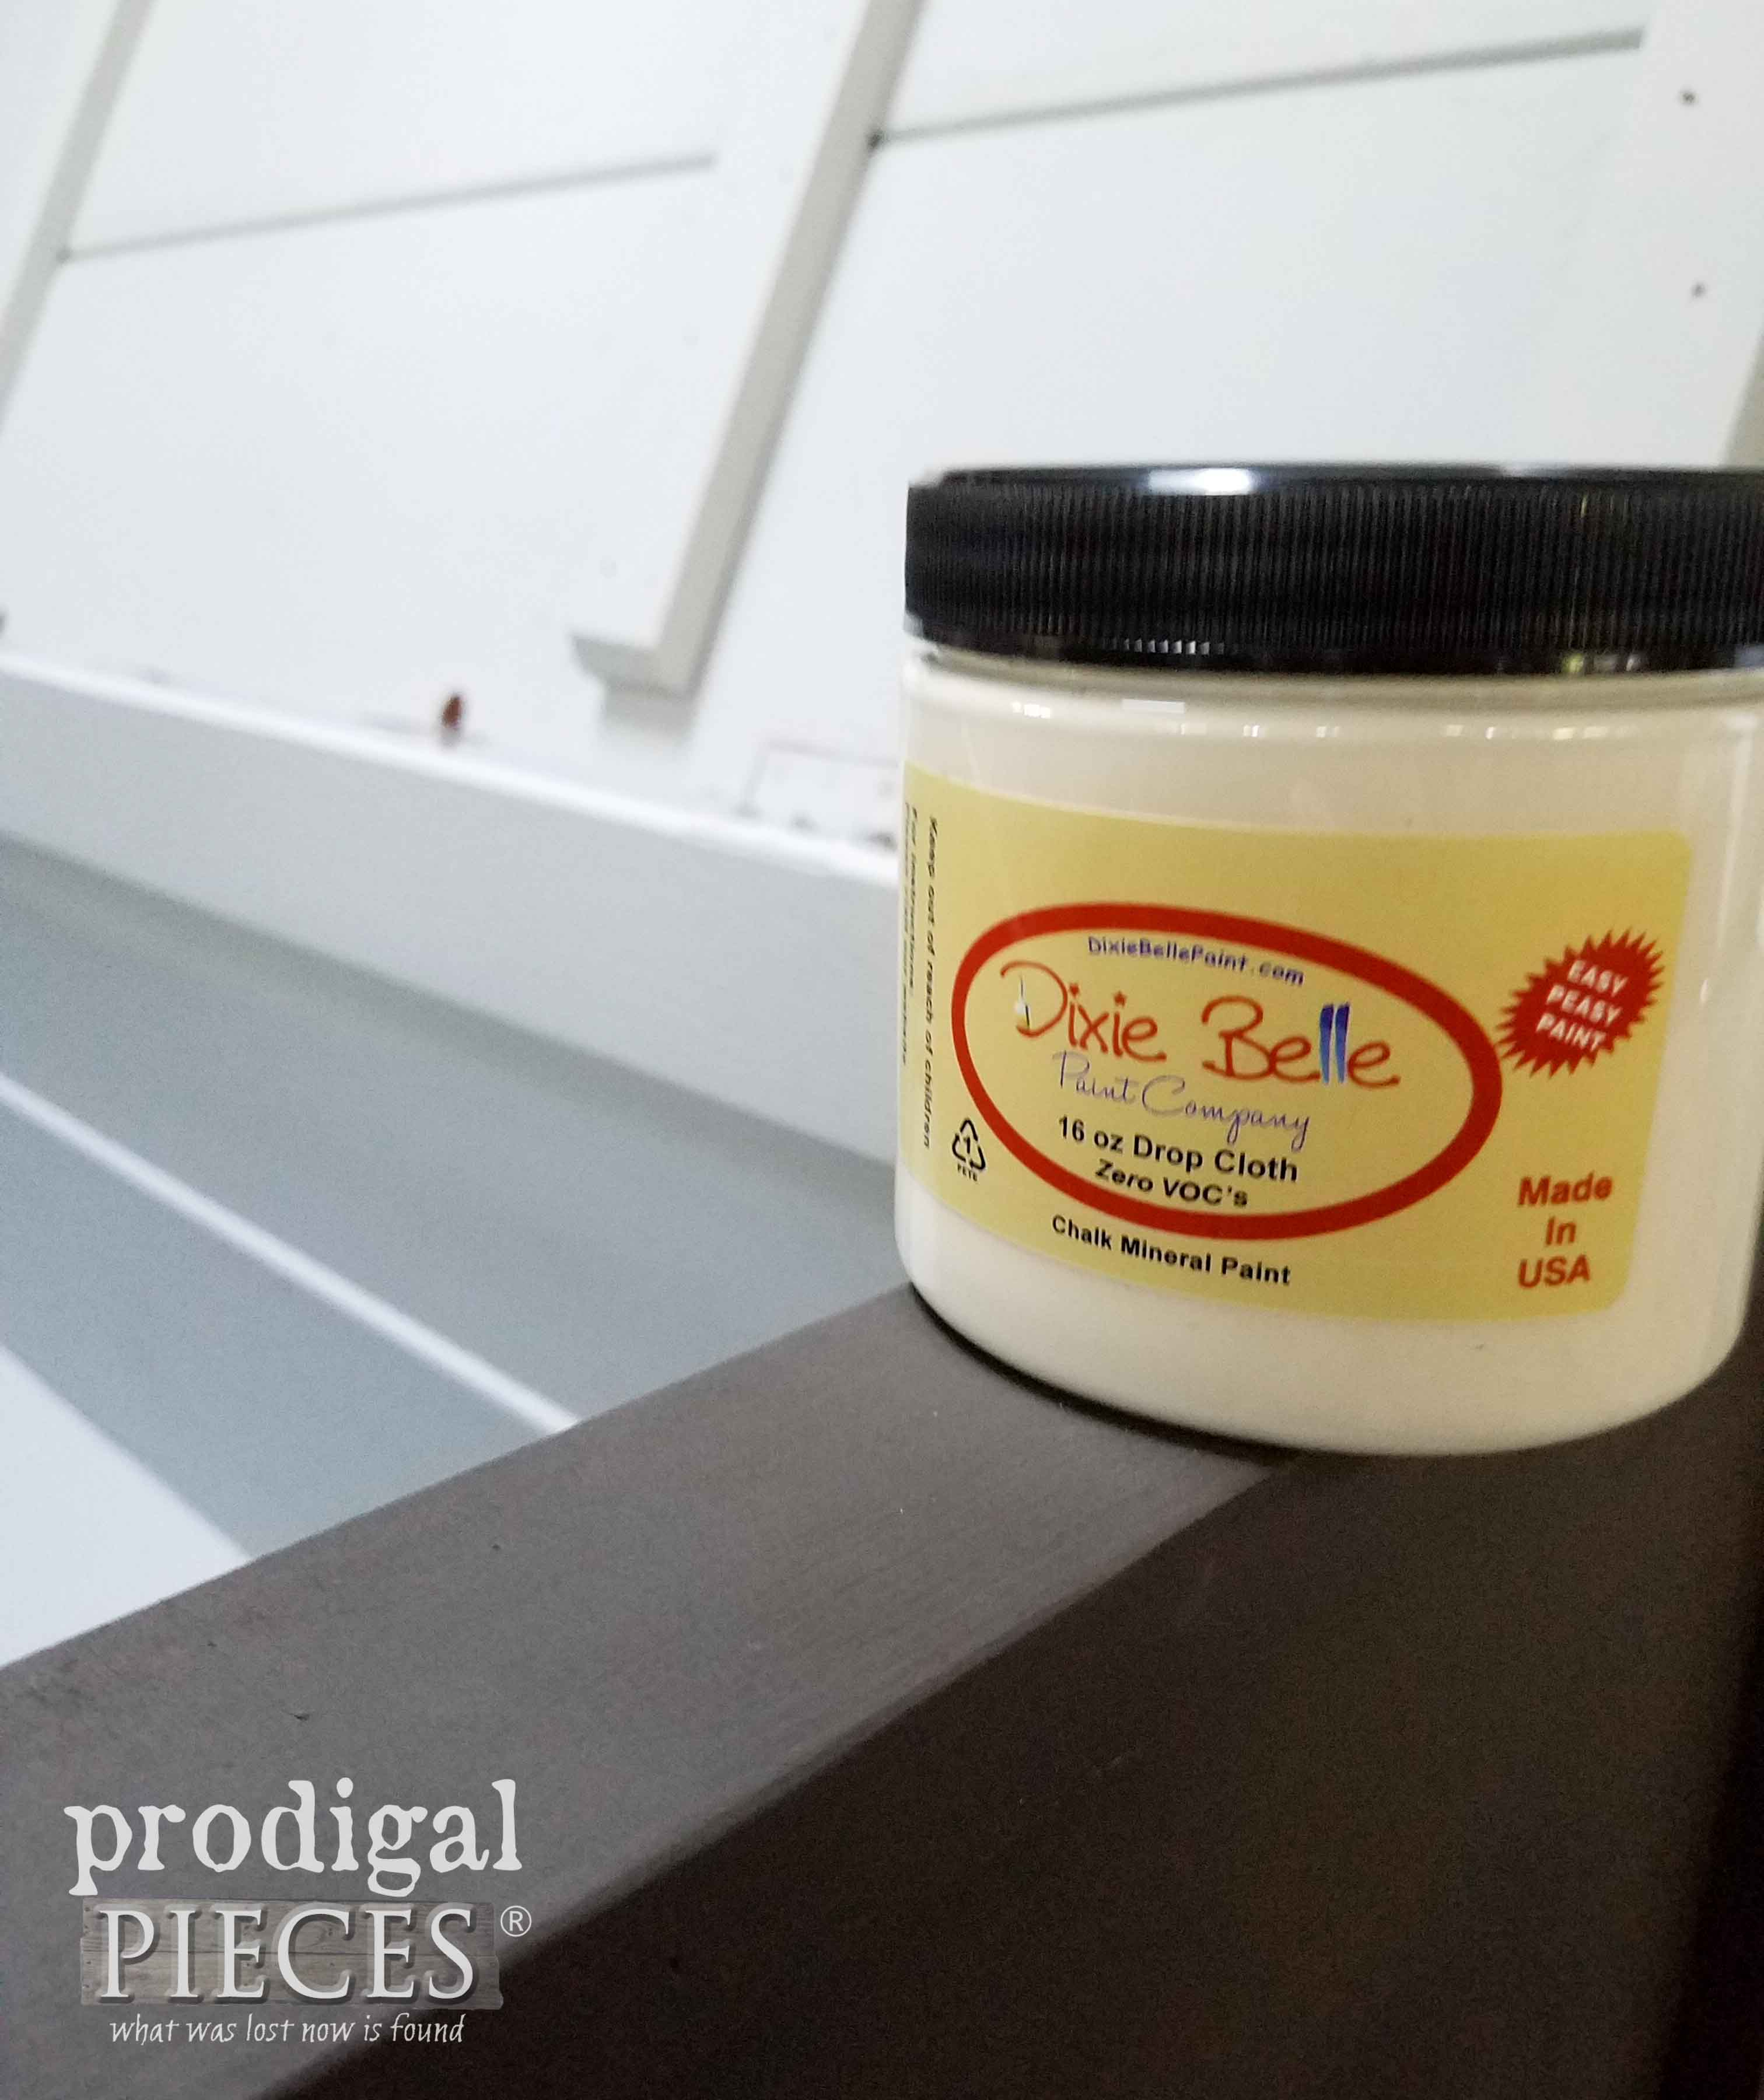 Dixie Belle Paint in Drop Cloth via Prodigal Pieces | prodigalpieces.com